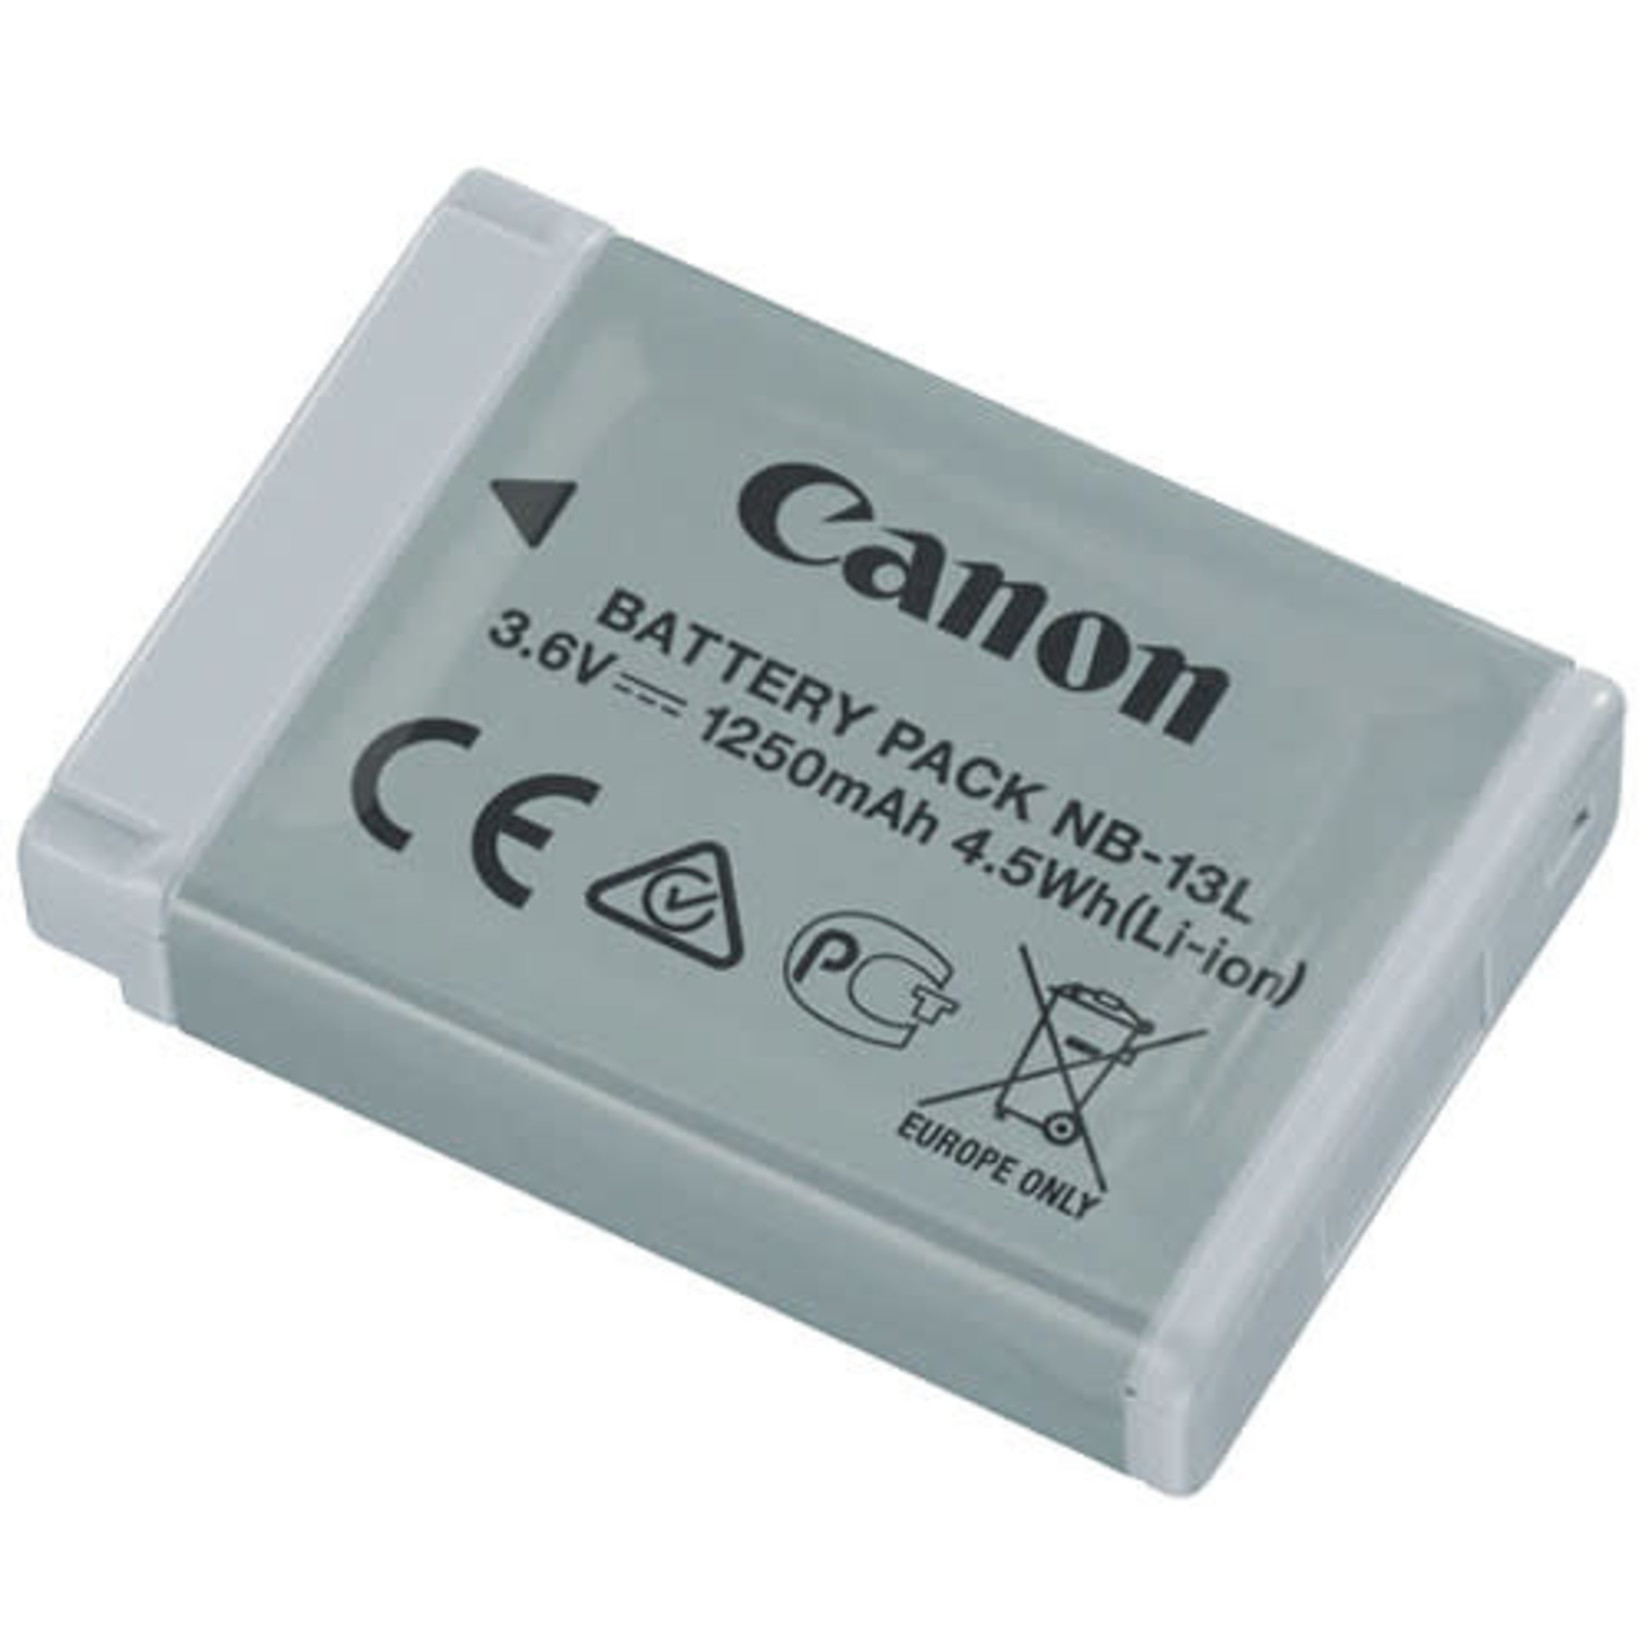 Canon Canon NB-13L Lithium-Ion Battery Pack (3.6V, 1250mAh)